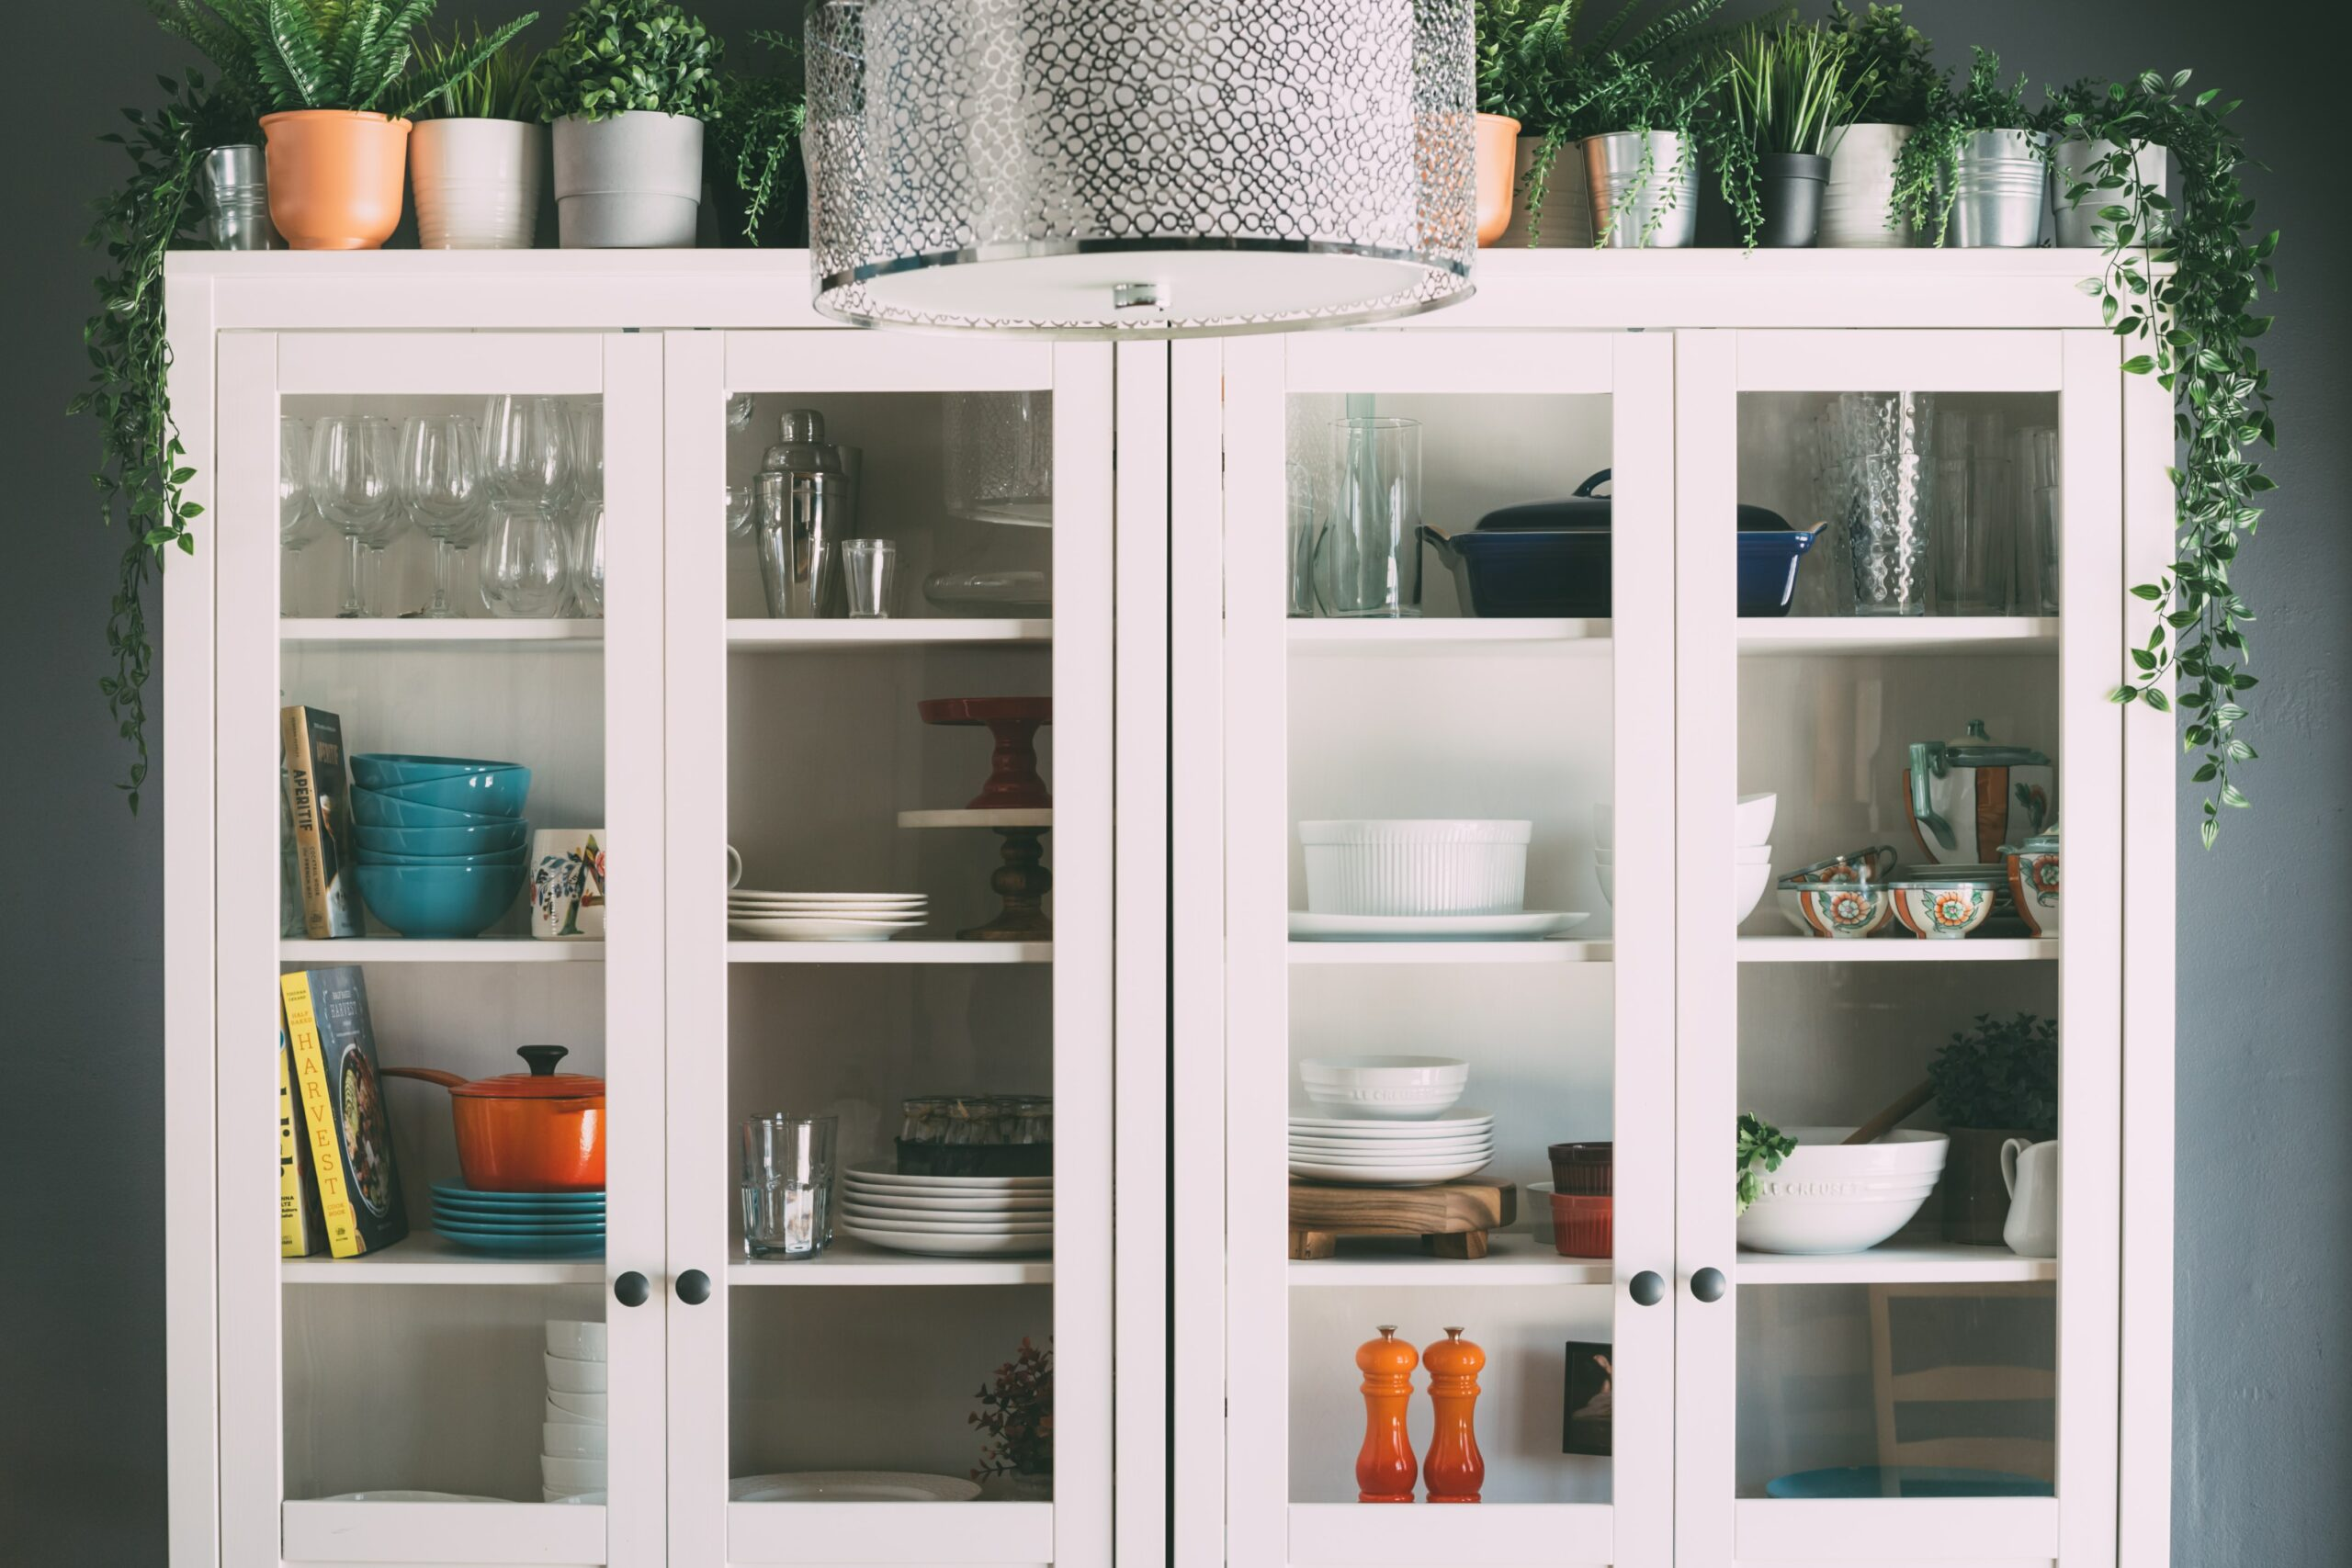 A cabinet full of dishware